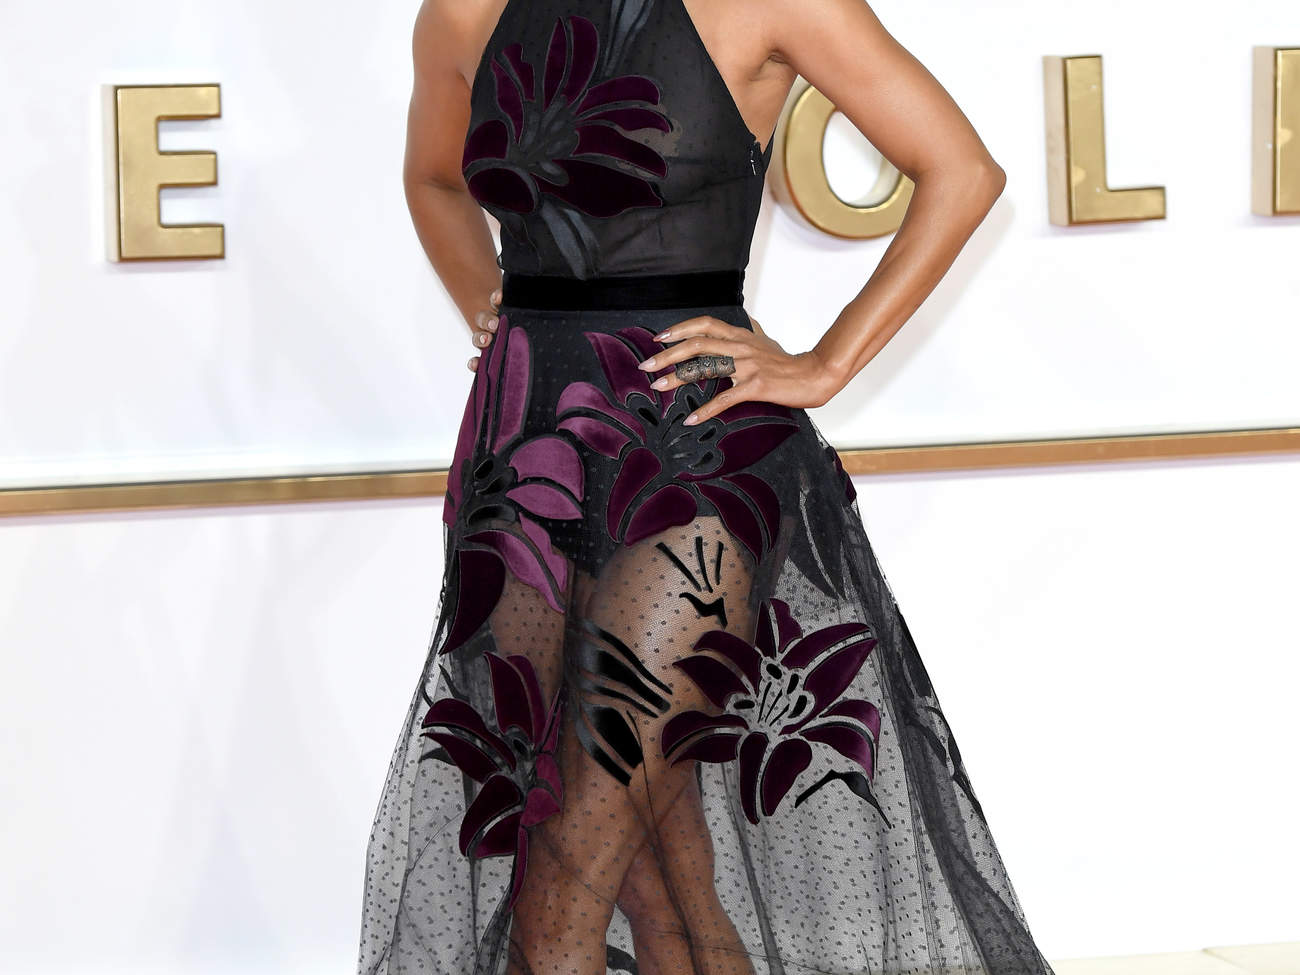 10-halle-berry-diabetes